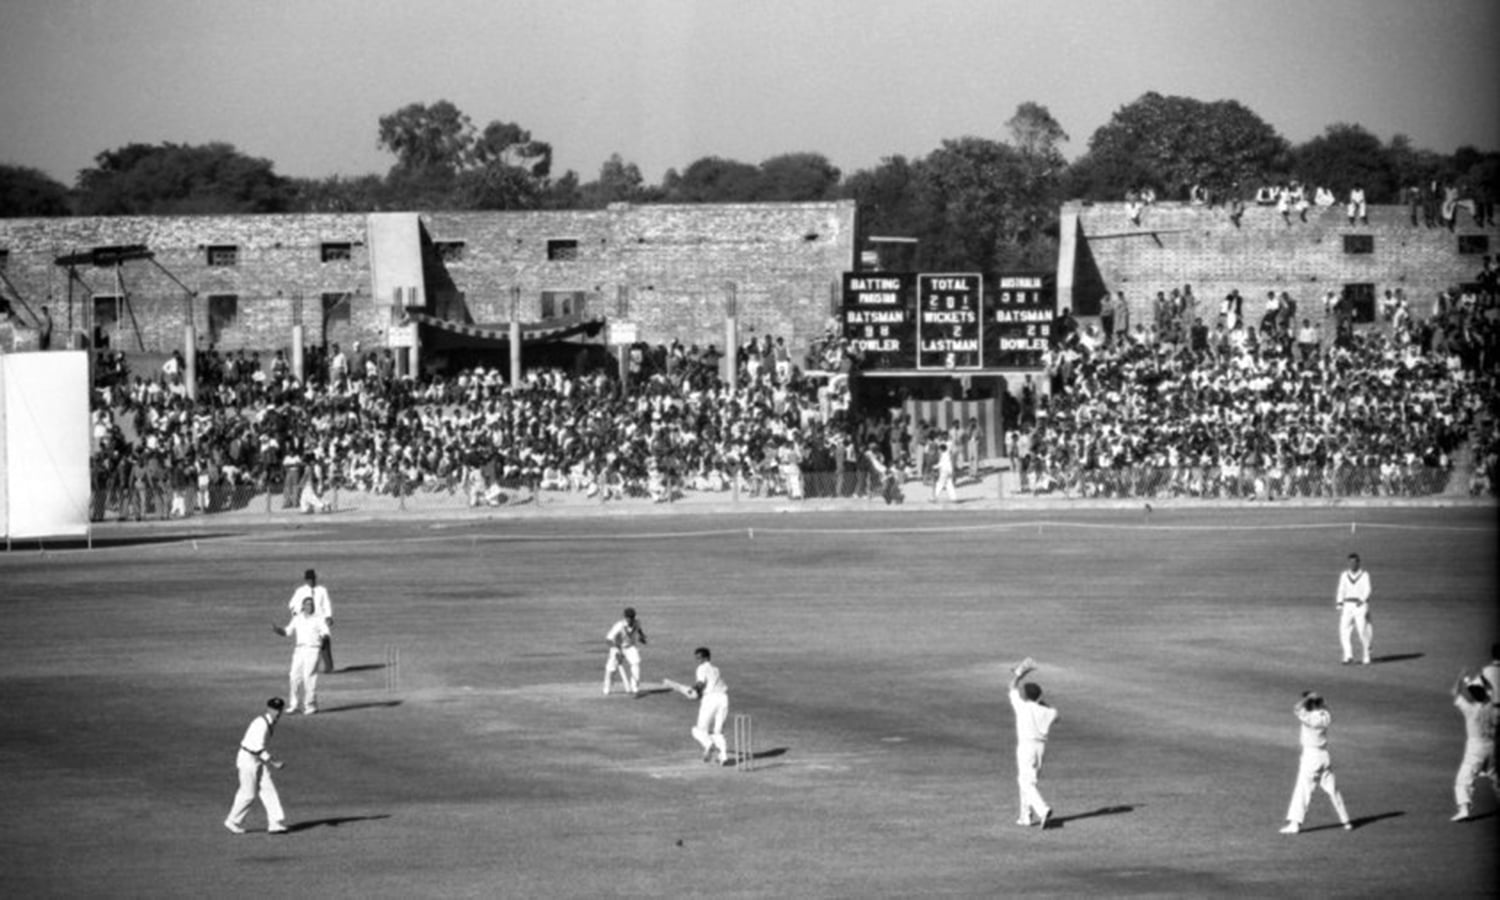 Let it be appreciated that the task of any historian or chronicler attempting to condense seventy years of Pakistan cricket into a few thousand words.